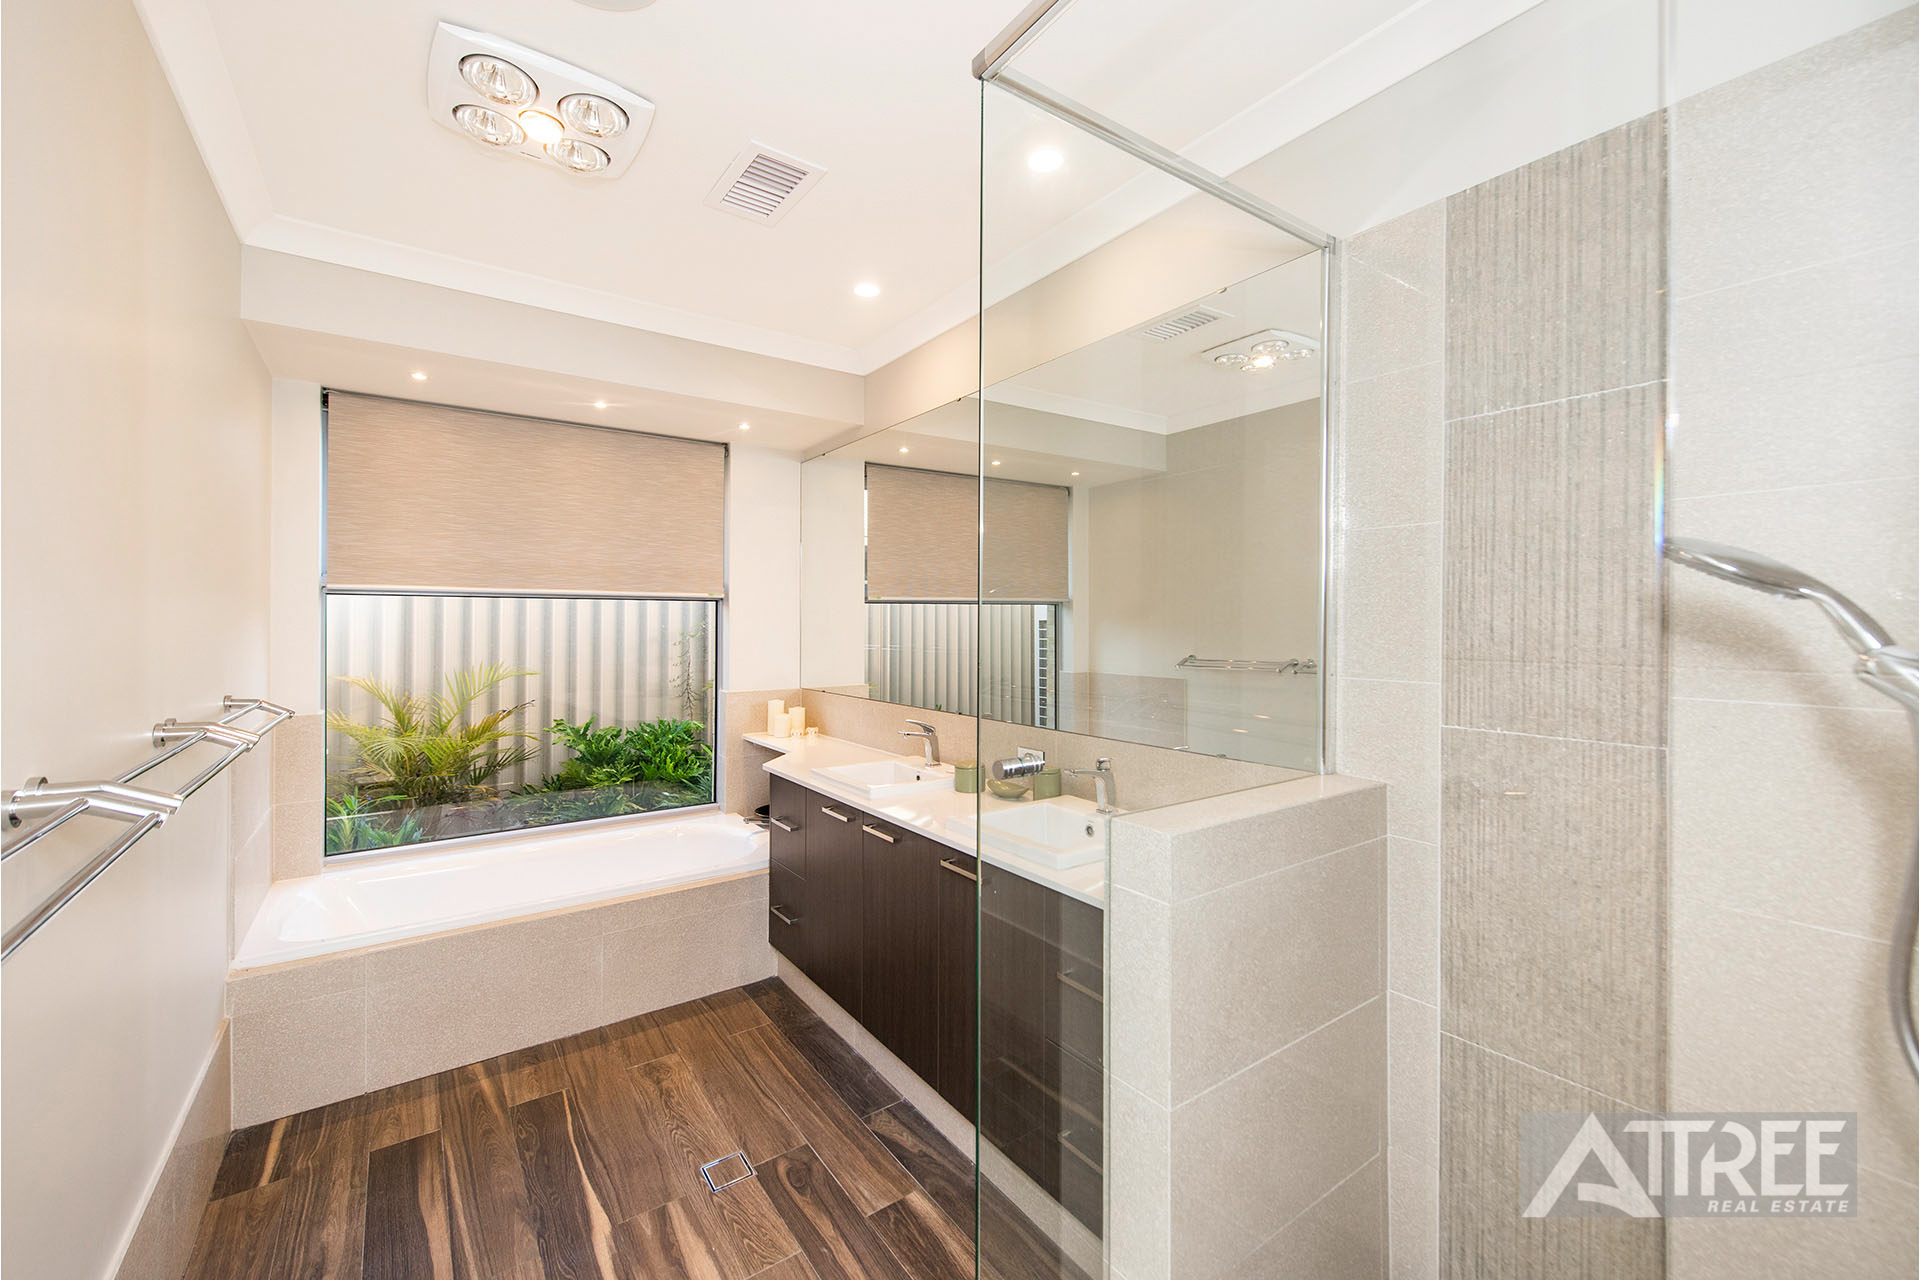 Property for sale in SOUTHERN RIVER, 7 Renoir Way : Attree Real Estate